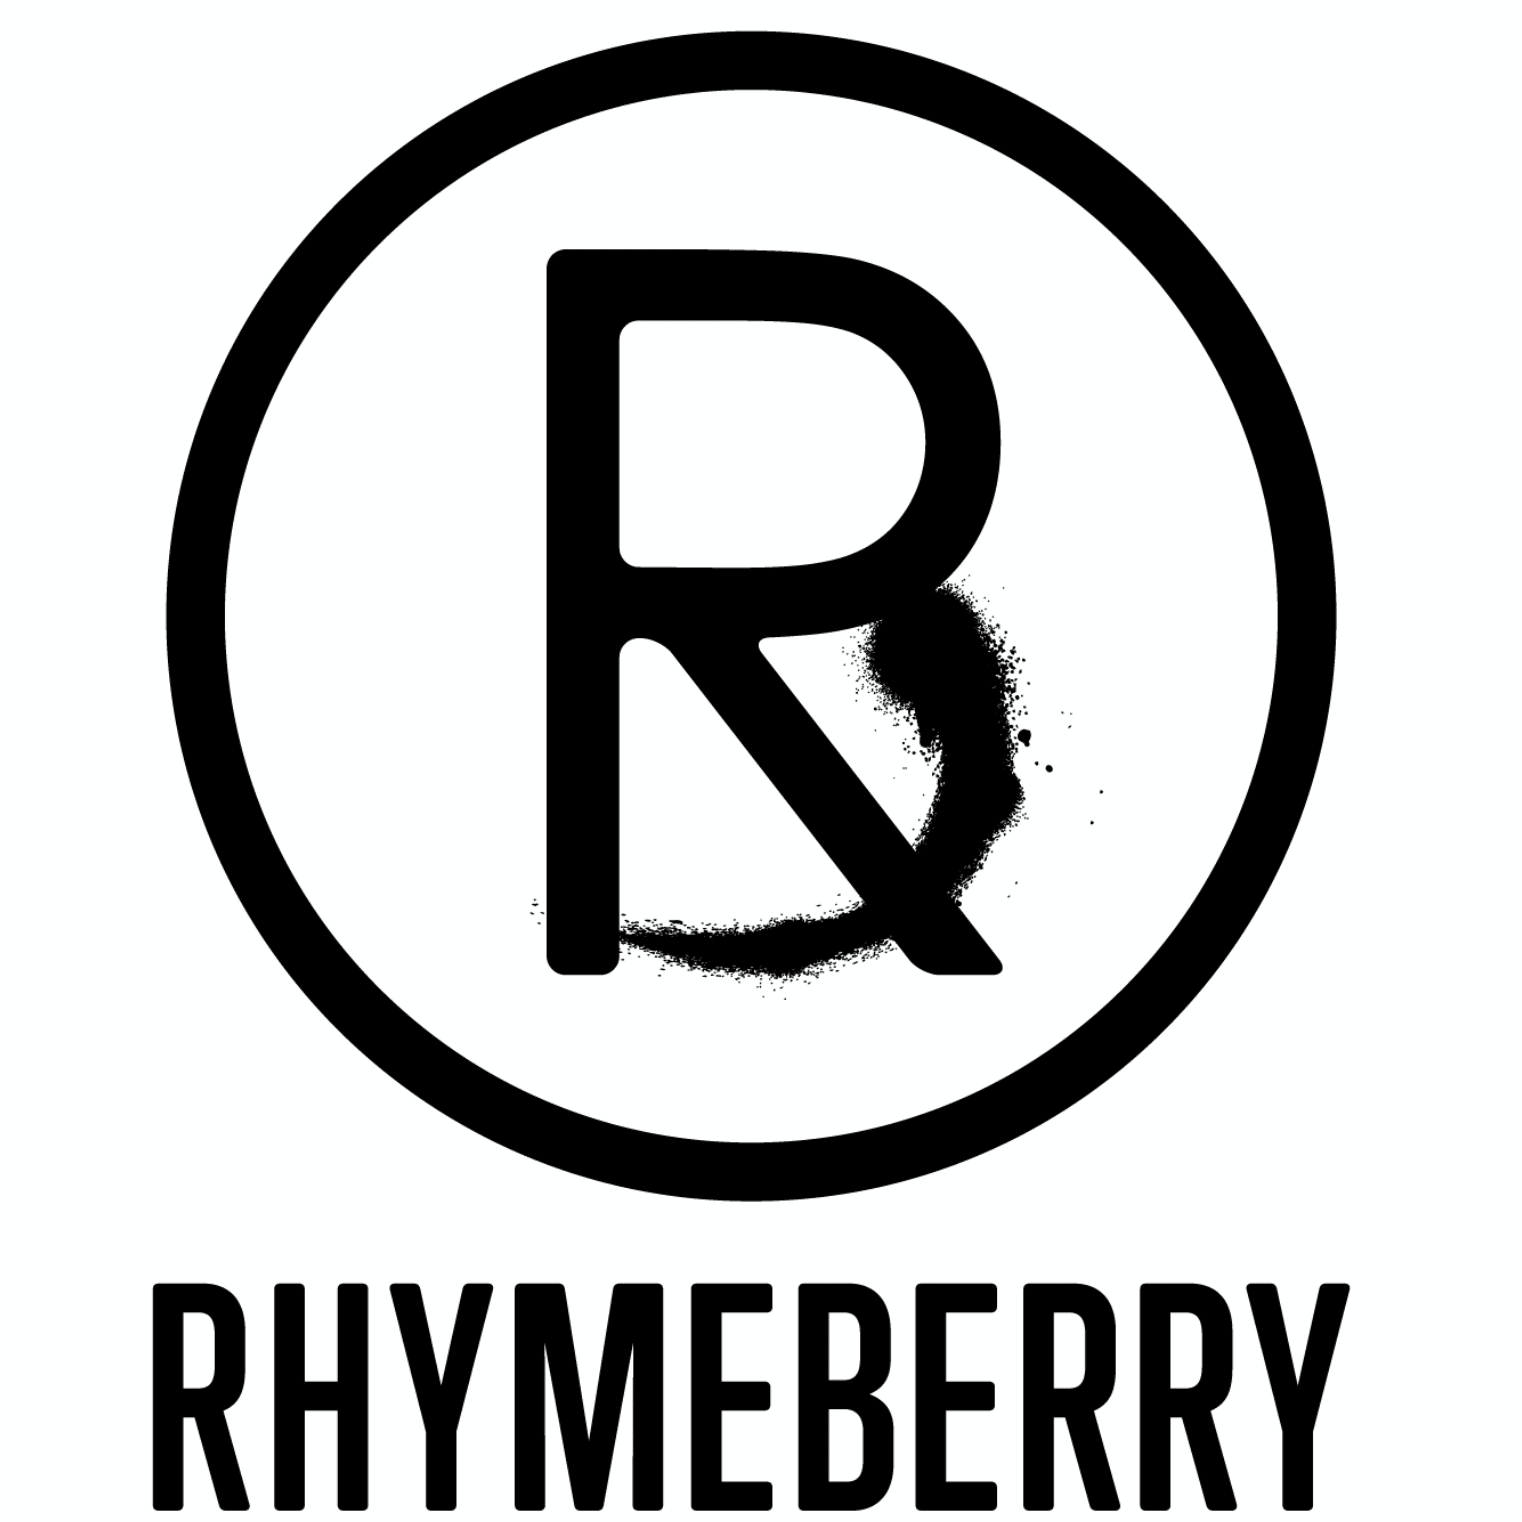 RHYMEBERRY Officialチャンネルのアイコン